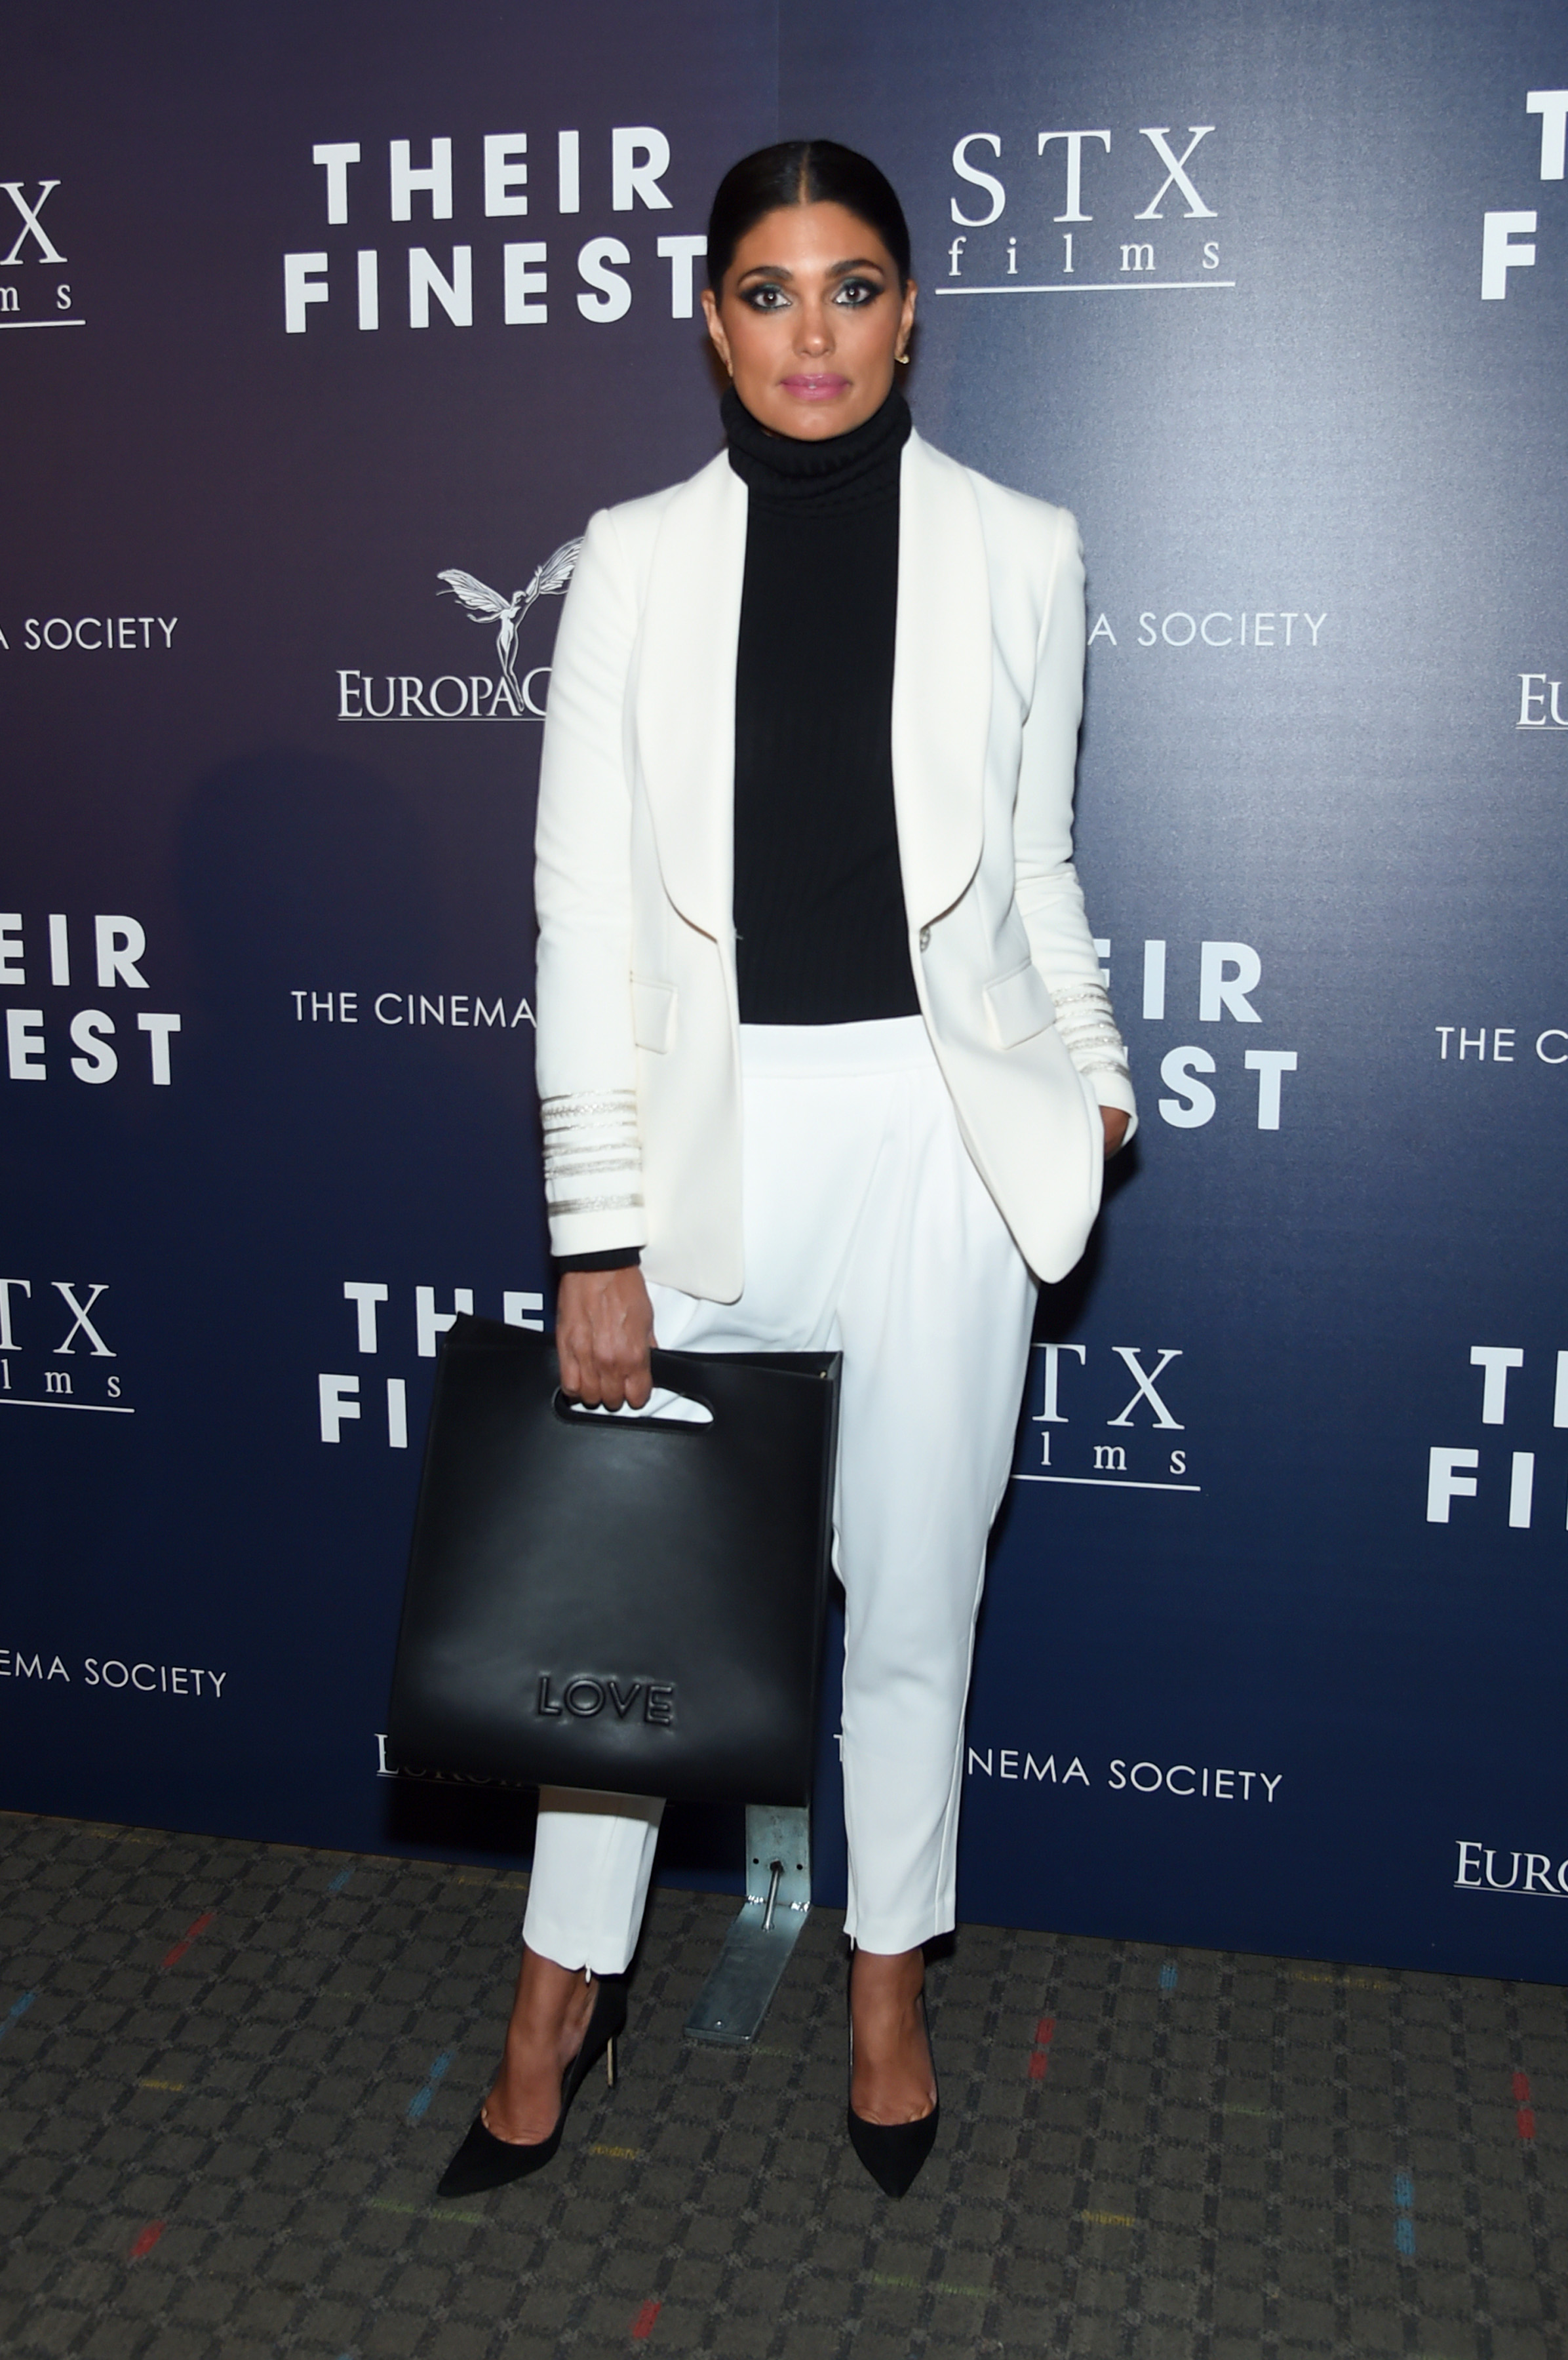 """NEW YORK, NY - MARCH 23: Fashion Designer Rachel Roy attends the Premiere of """"Their Finest"""" hosted by STXfilms and EuropaCorp with the Cinema Society at SVA Theatre on March 23, 2017 in New York City. (Photo by Jamie McCarthy/Getty Images)"""